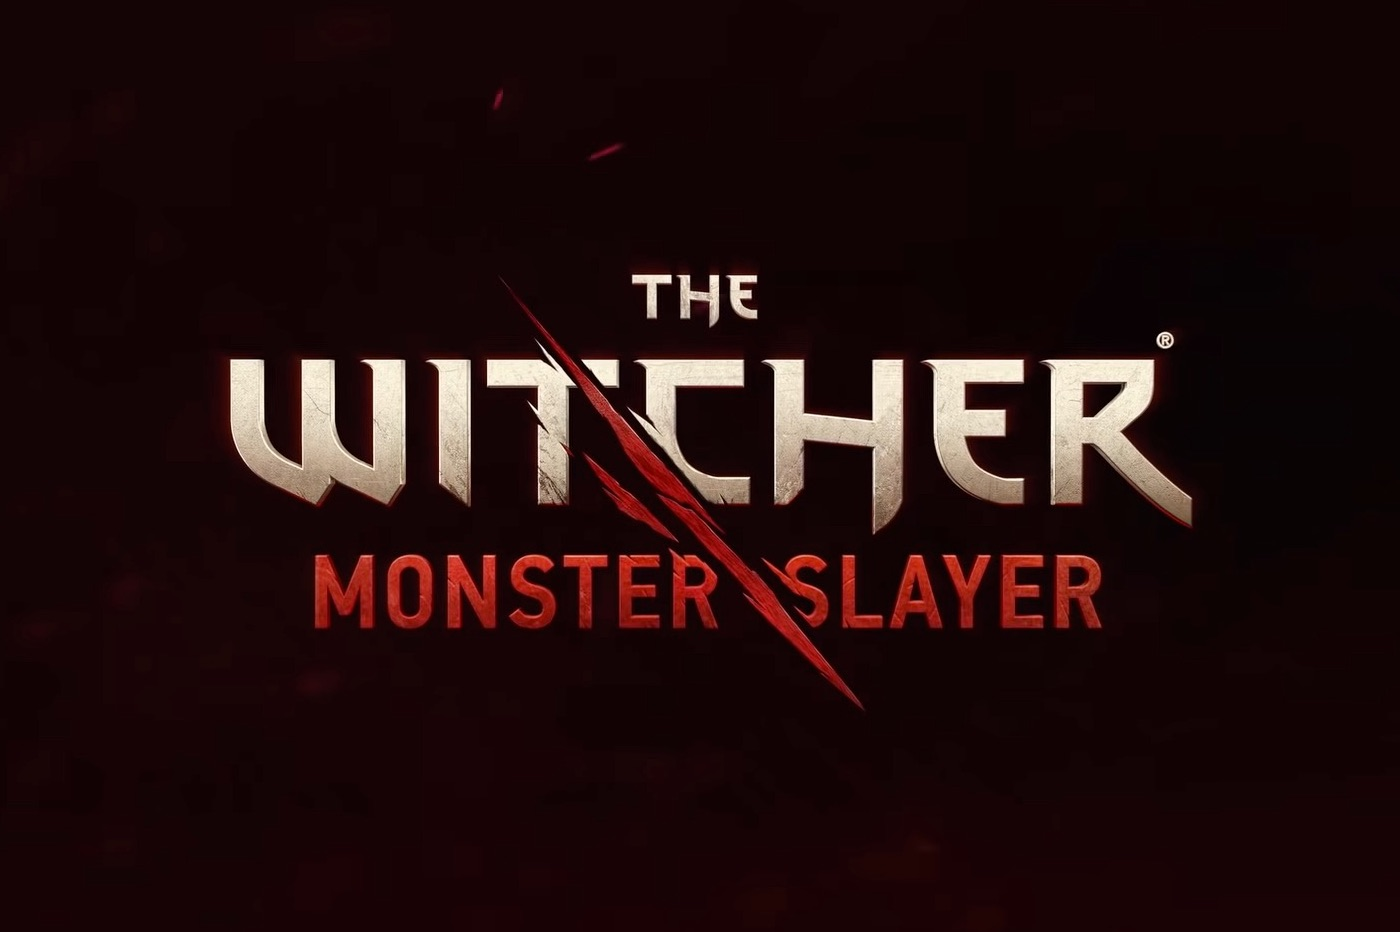 The Witcher: Monster Slaer